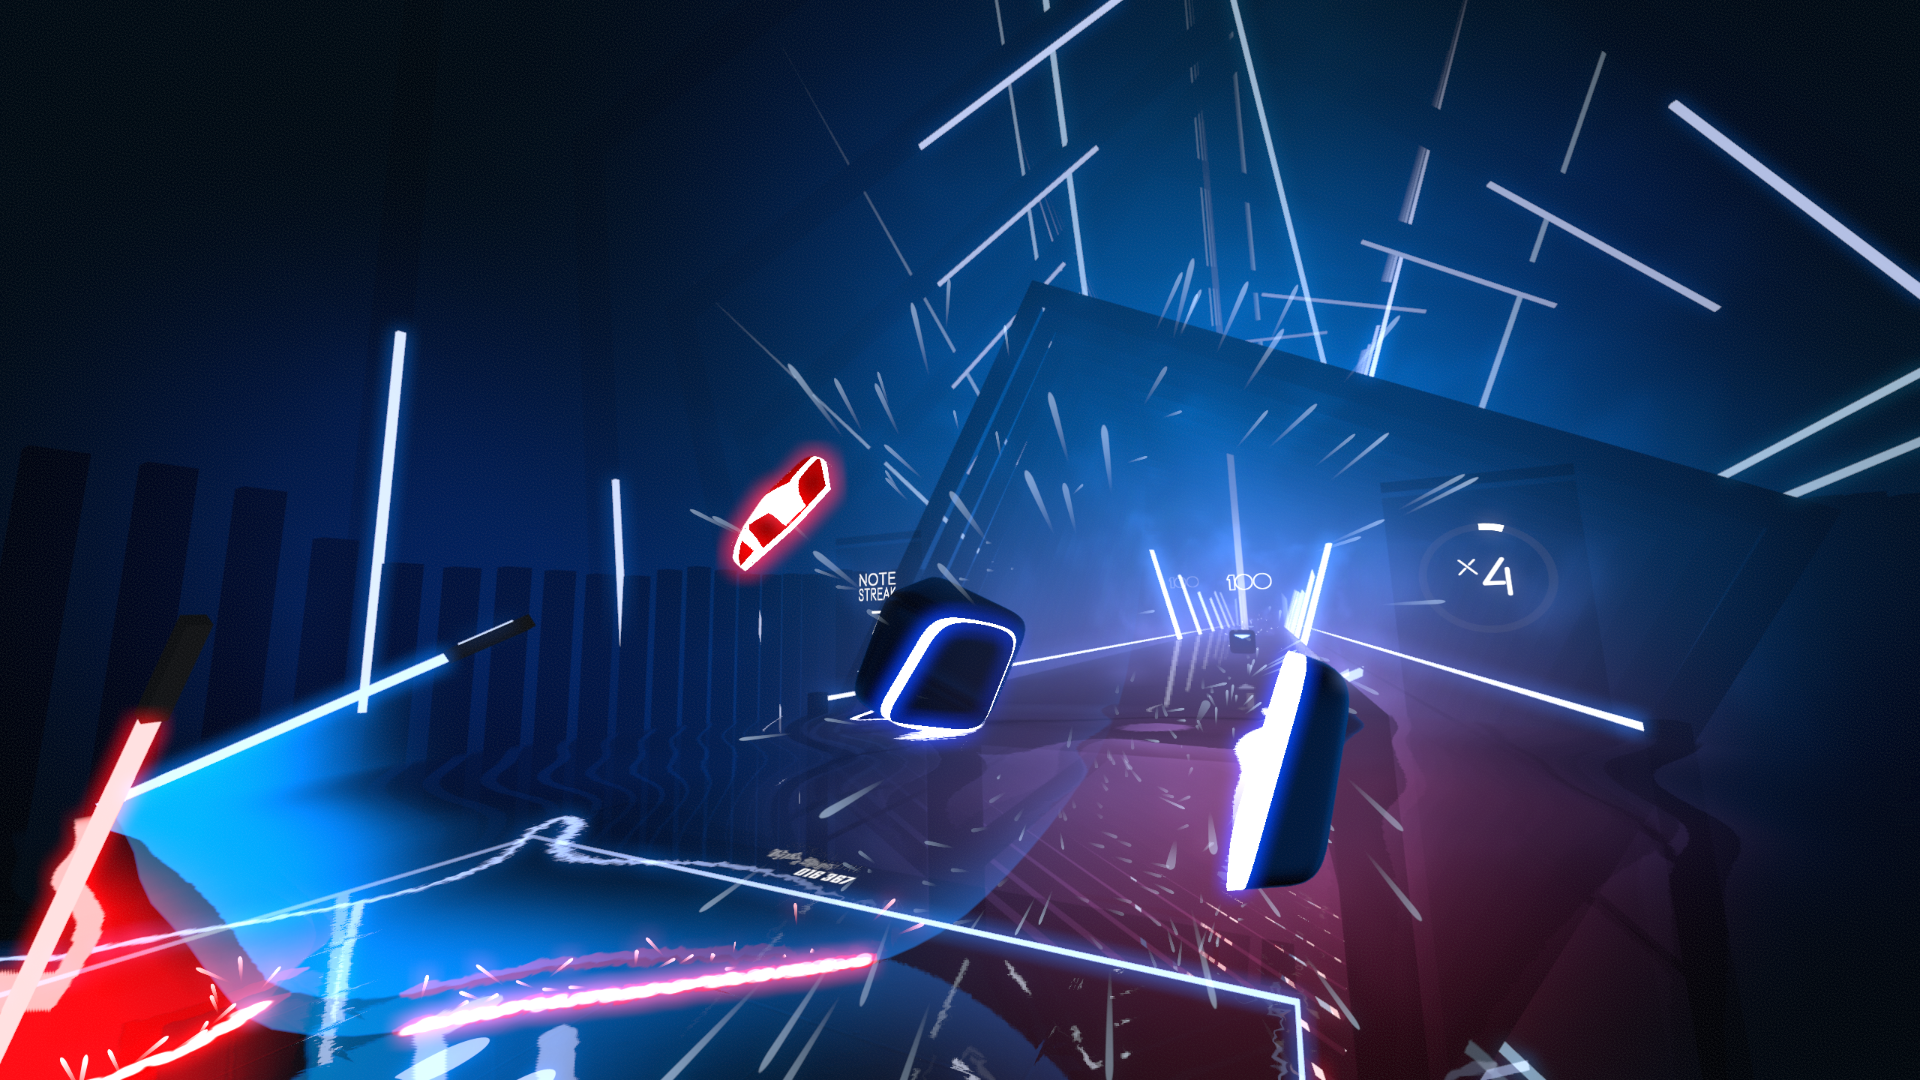 International Beat Saber Tournament Poised to Make History as Largest VR Arcade Event EVER